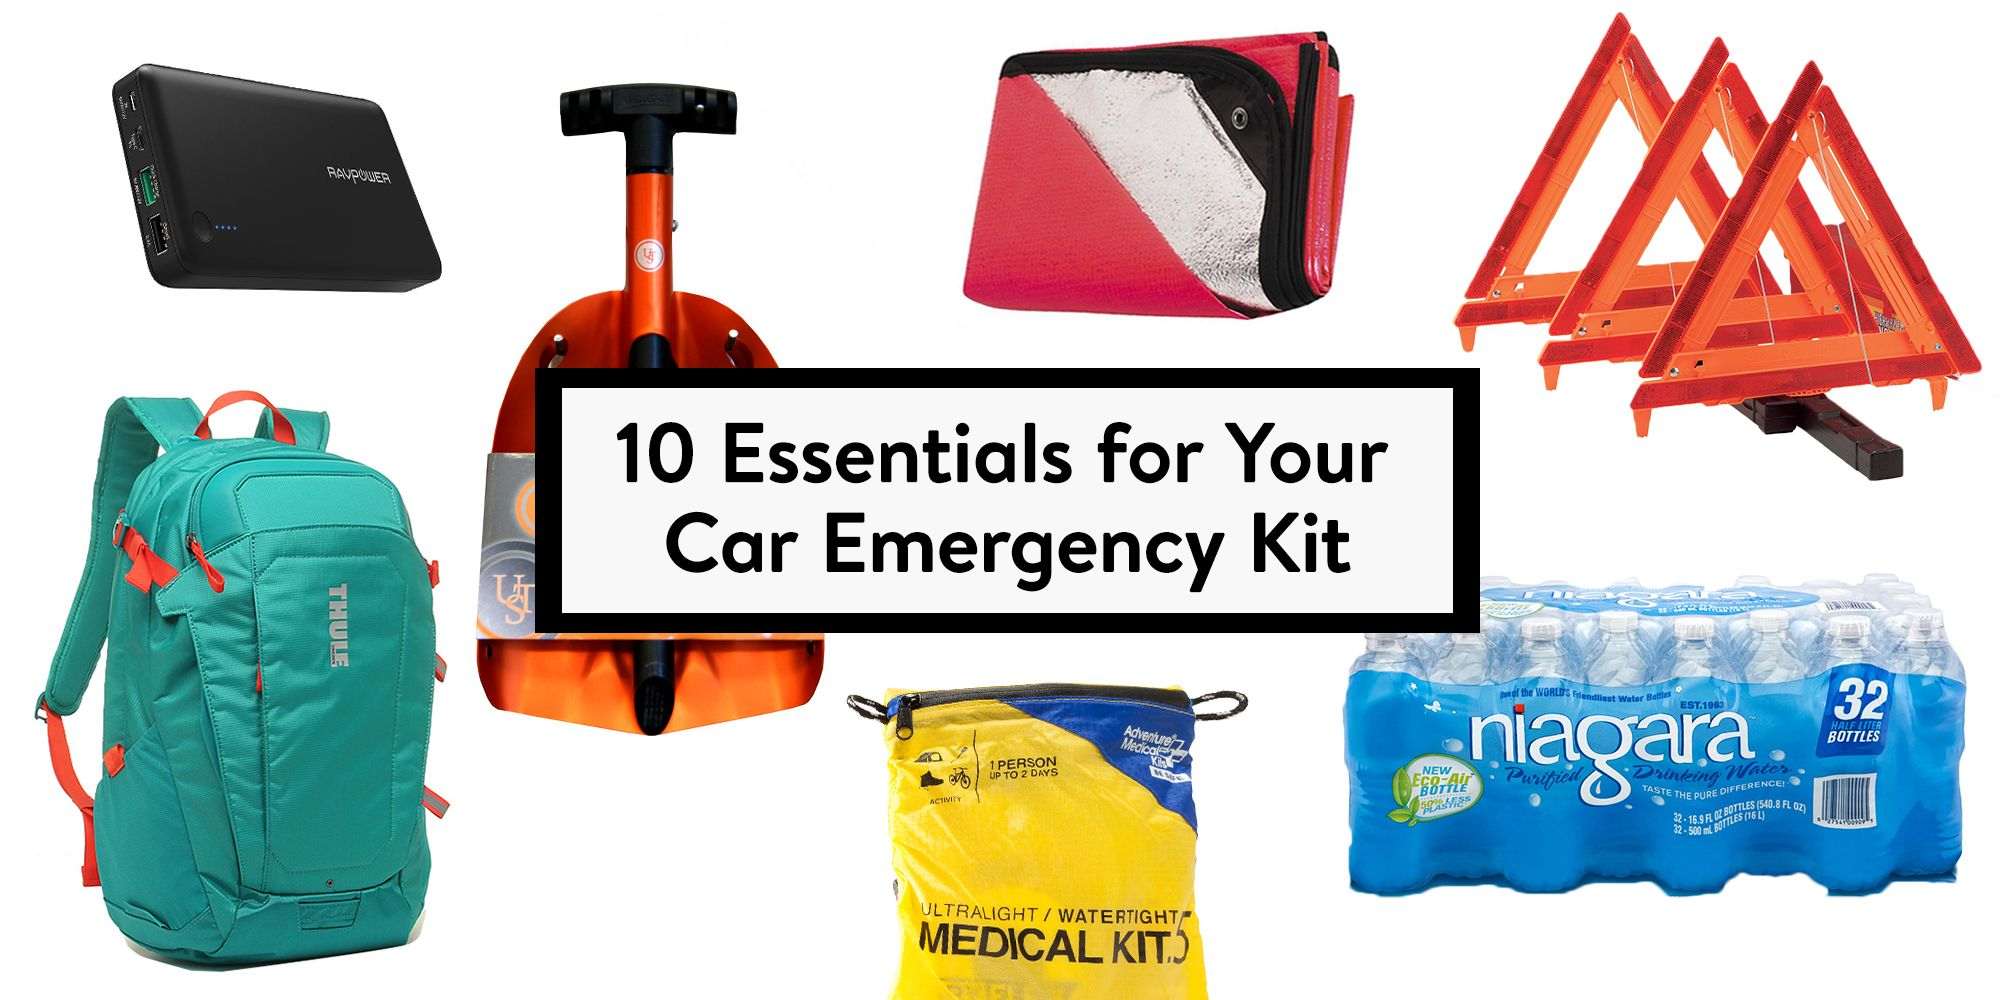 Safety First 10 Essentials for Your Car Emergency Kit